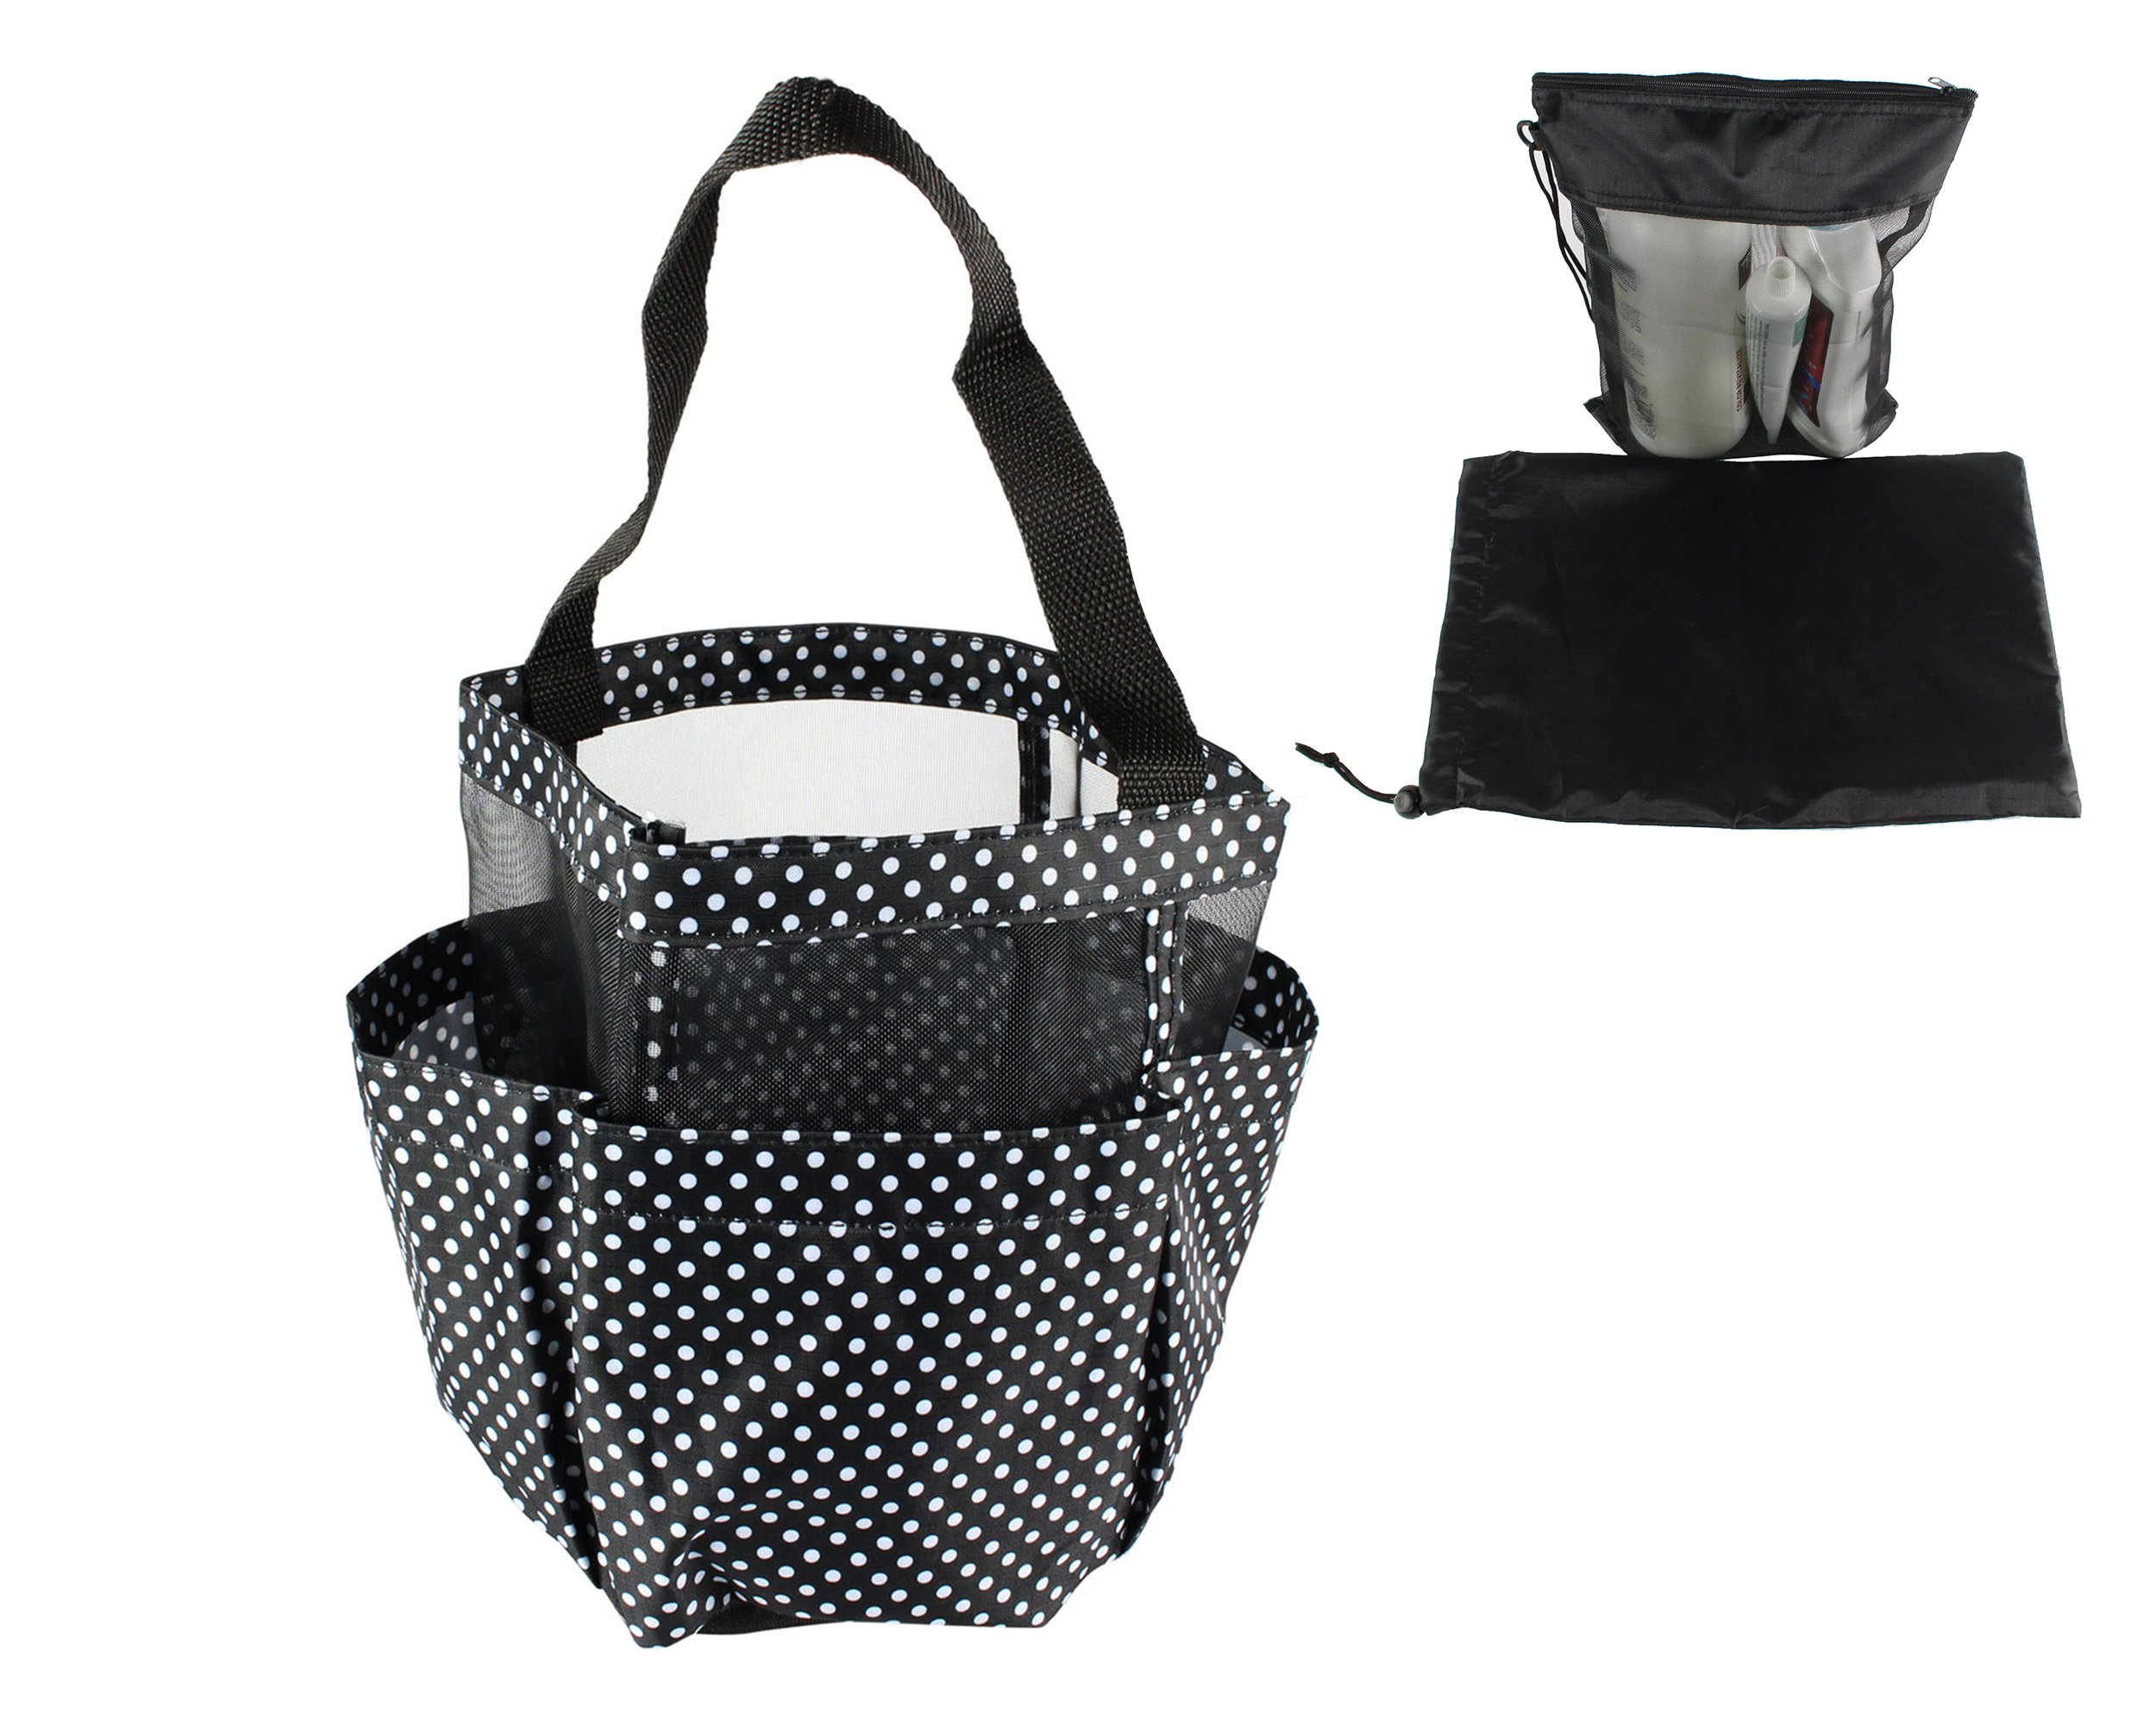 Cherlex Shower Caddy Portable Mesh Tote -Quick Dry Hanging Bath and Toiletry Storage Organizer for College Dorms, Gyms and Travel-Includes Bonus Travel Mesh Tote with Carrying Bag (Black White Dotted)